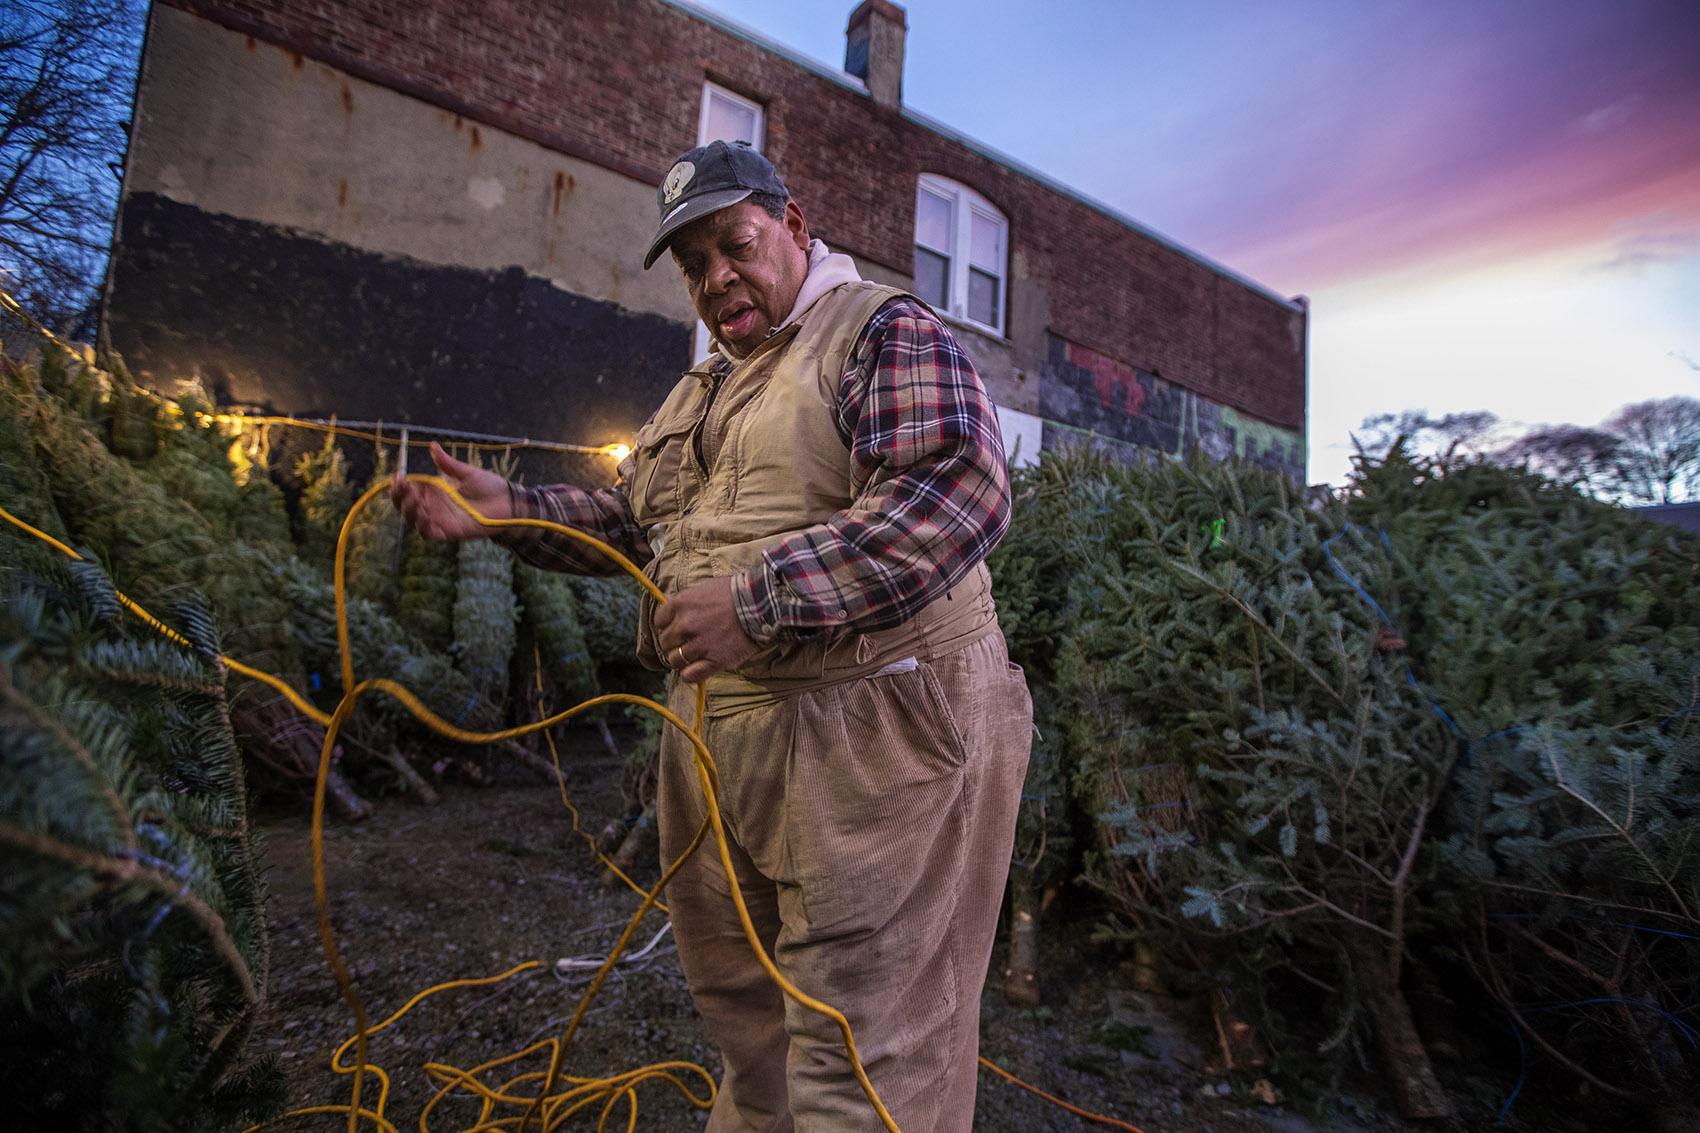 Dannie Kelly is surrounded by Christmas trees as he prepares to open his lot in Four Corners for this holiday season. (Jesse Costa/WBUR)